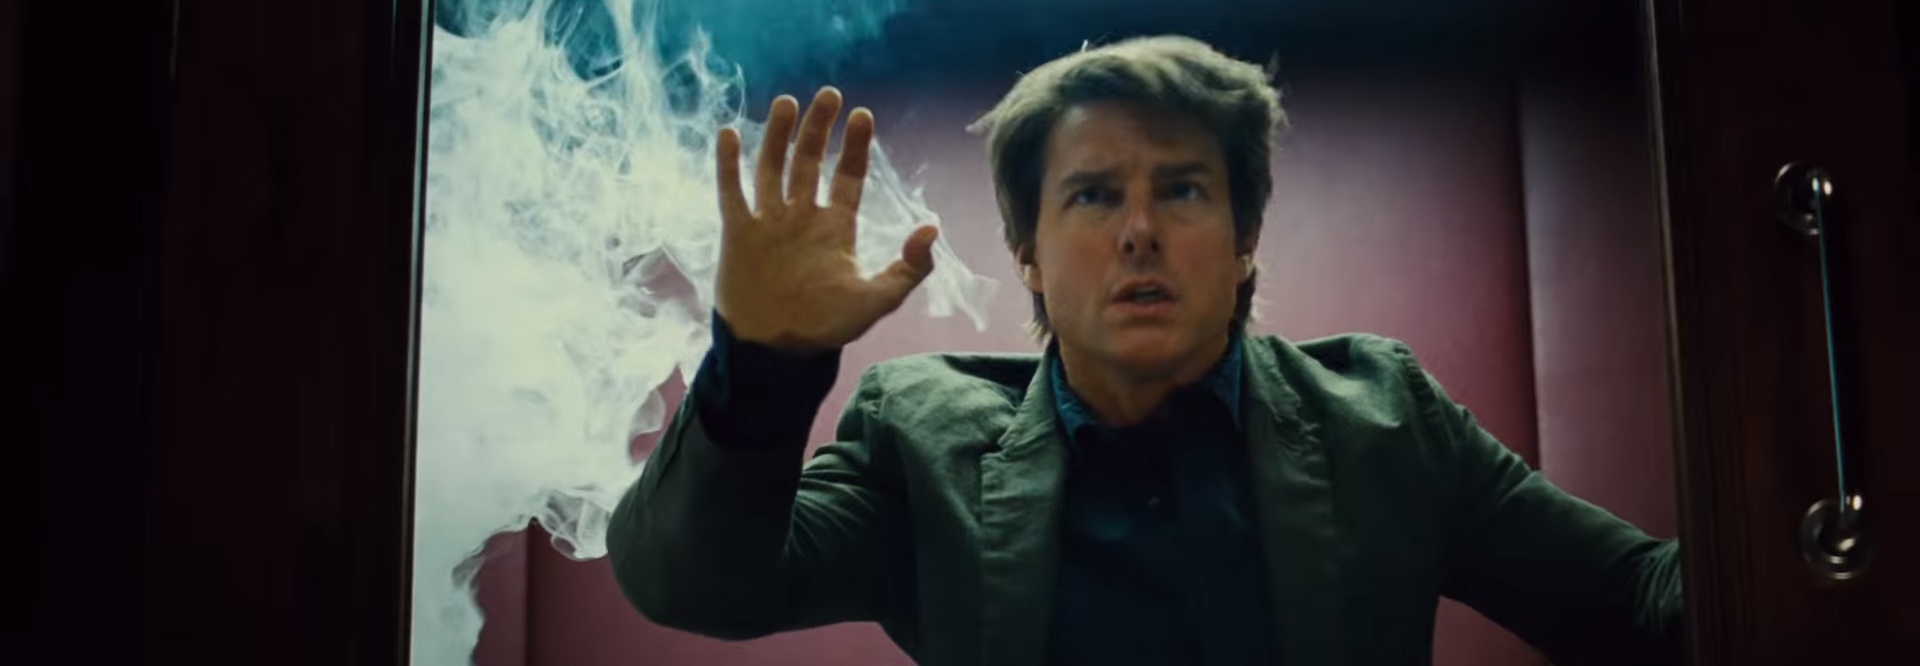 Mission: Impossible – Rogue Nation. Image Credit: Paramount Pictures.